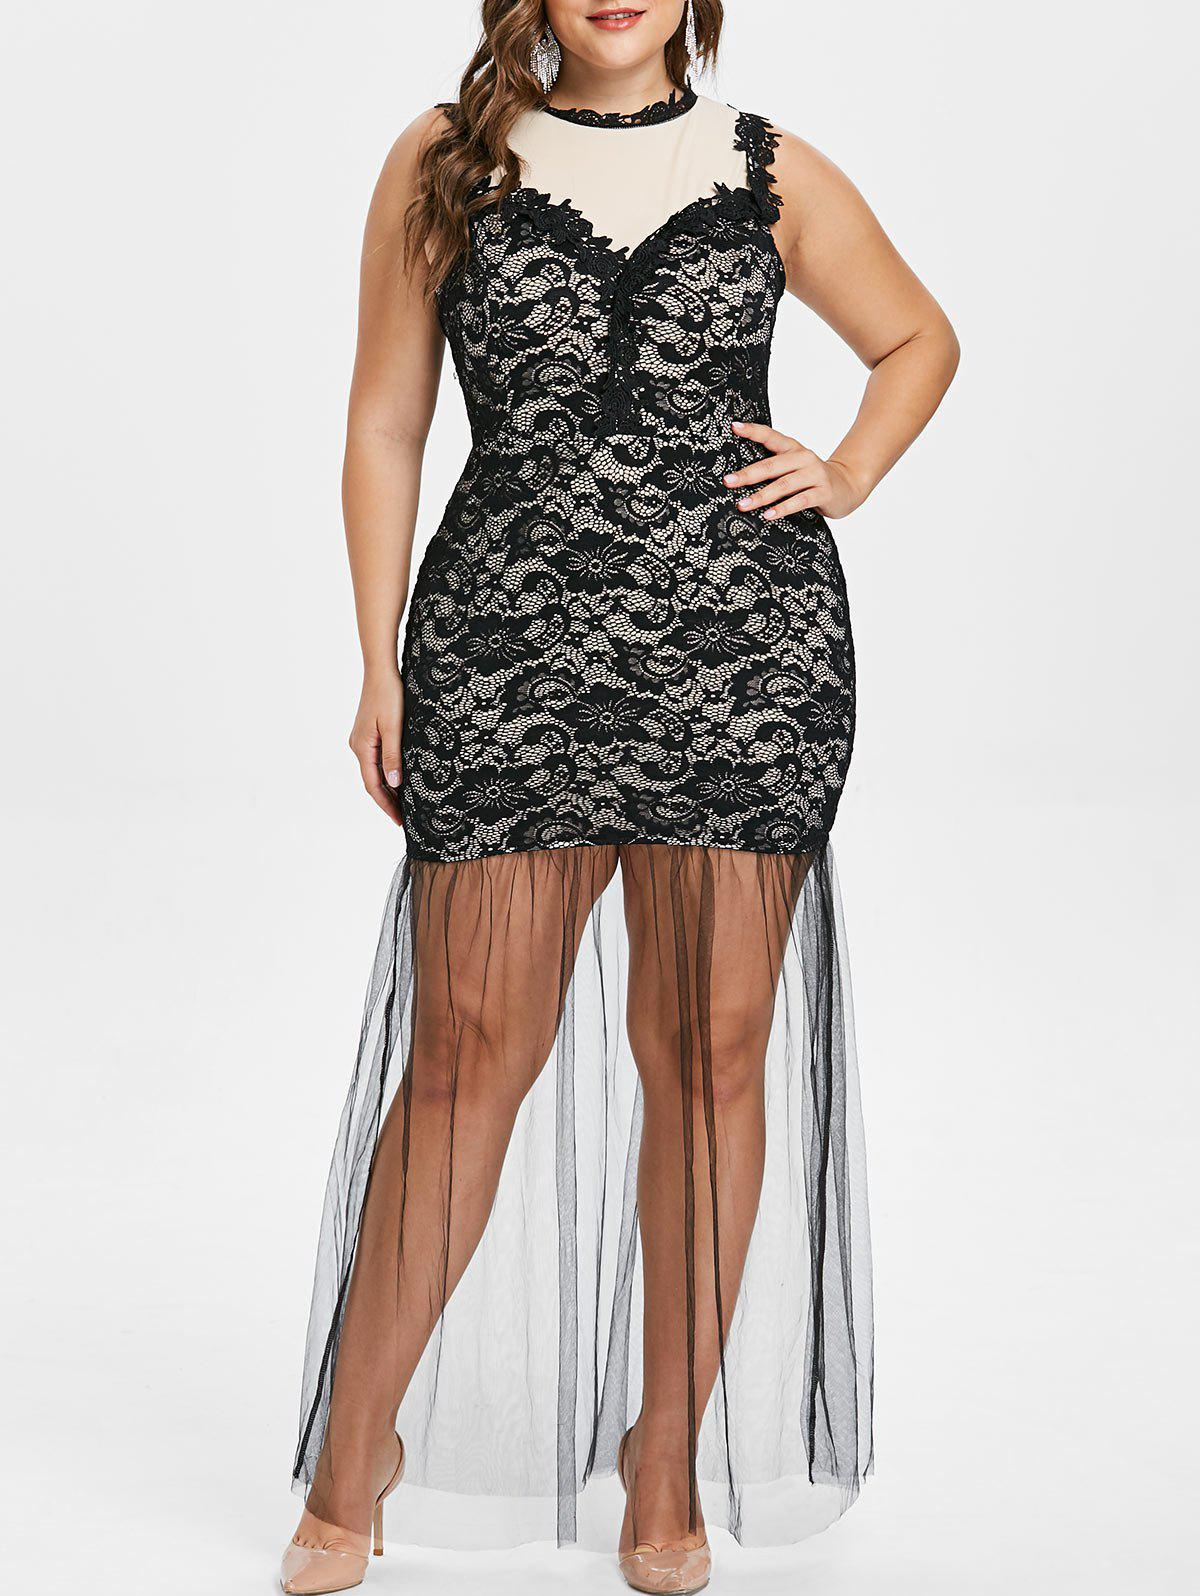 Plus Size Sleeveless Lace Bodycon Dress - BLACK 3X